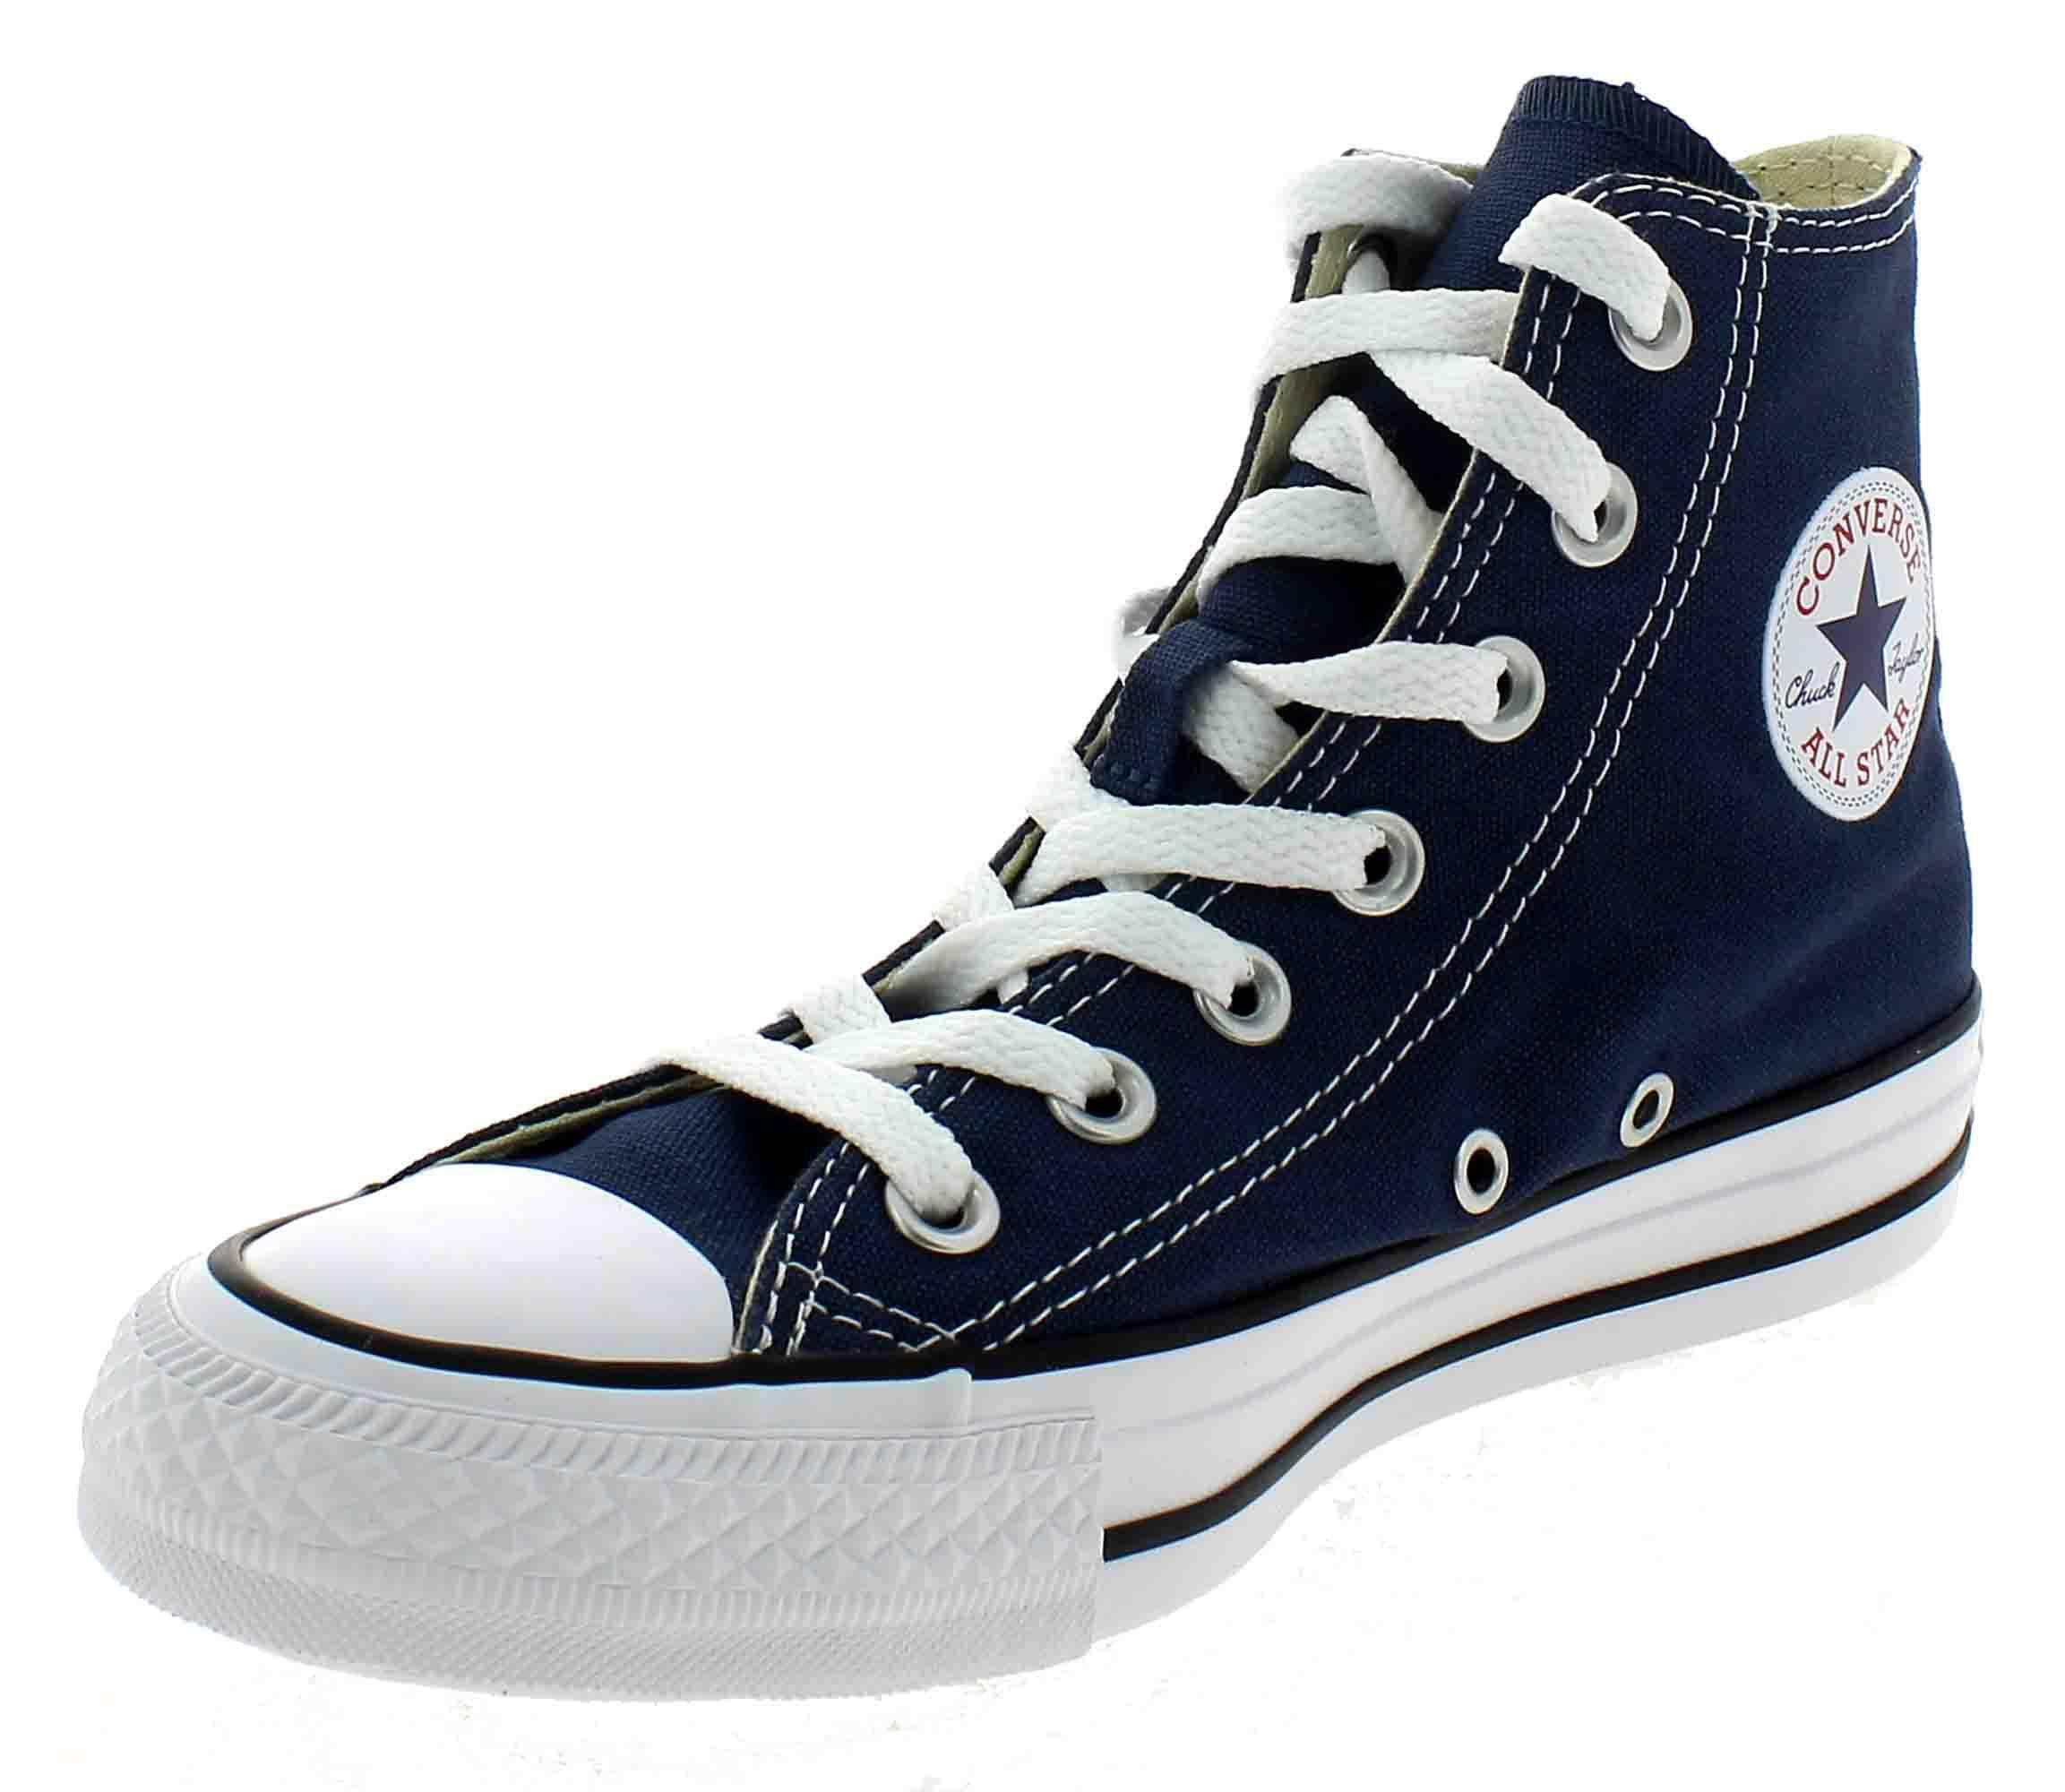 dad5aa46aeec Converse Chuck Taylor All Star Hi Navy Blue M9622c UK 5.5 for sale ...